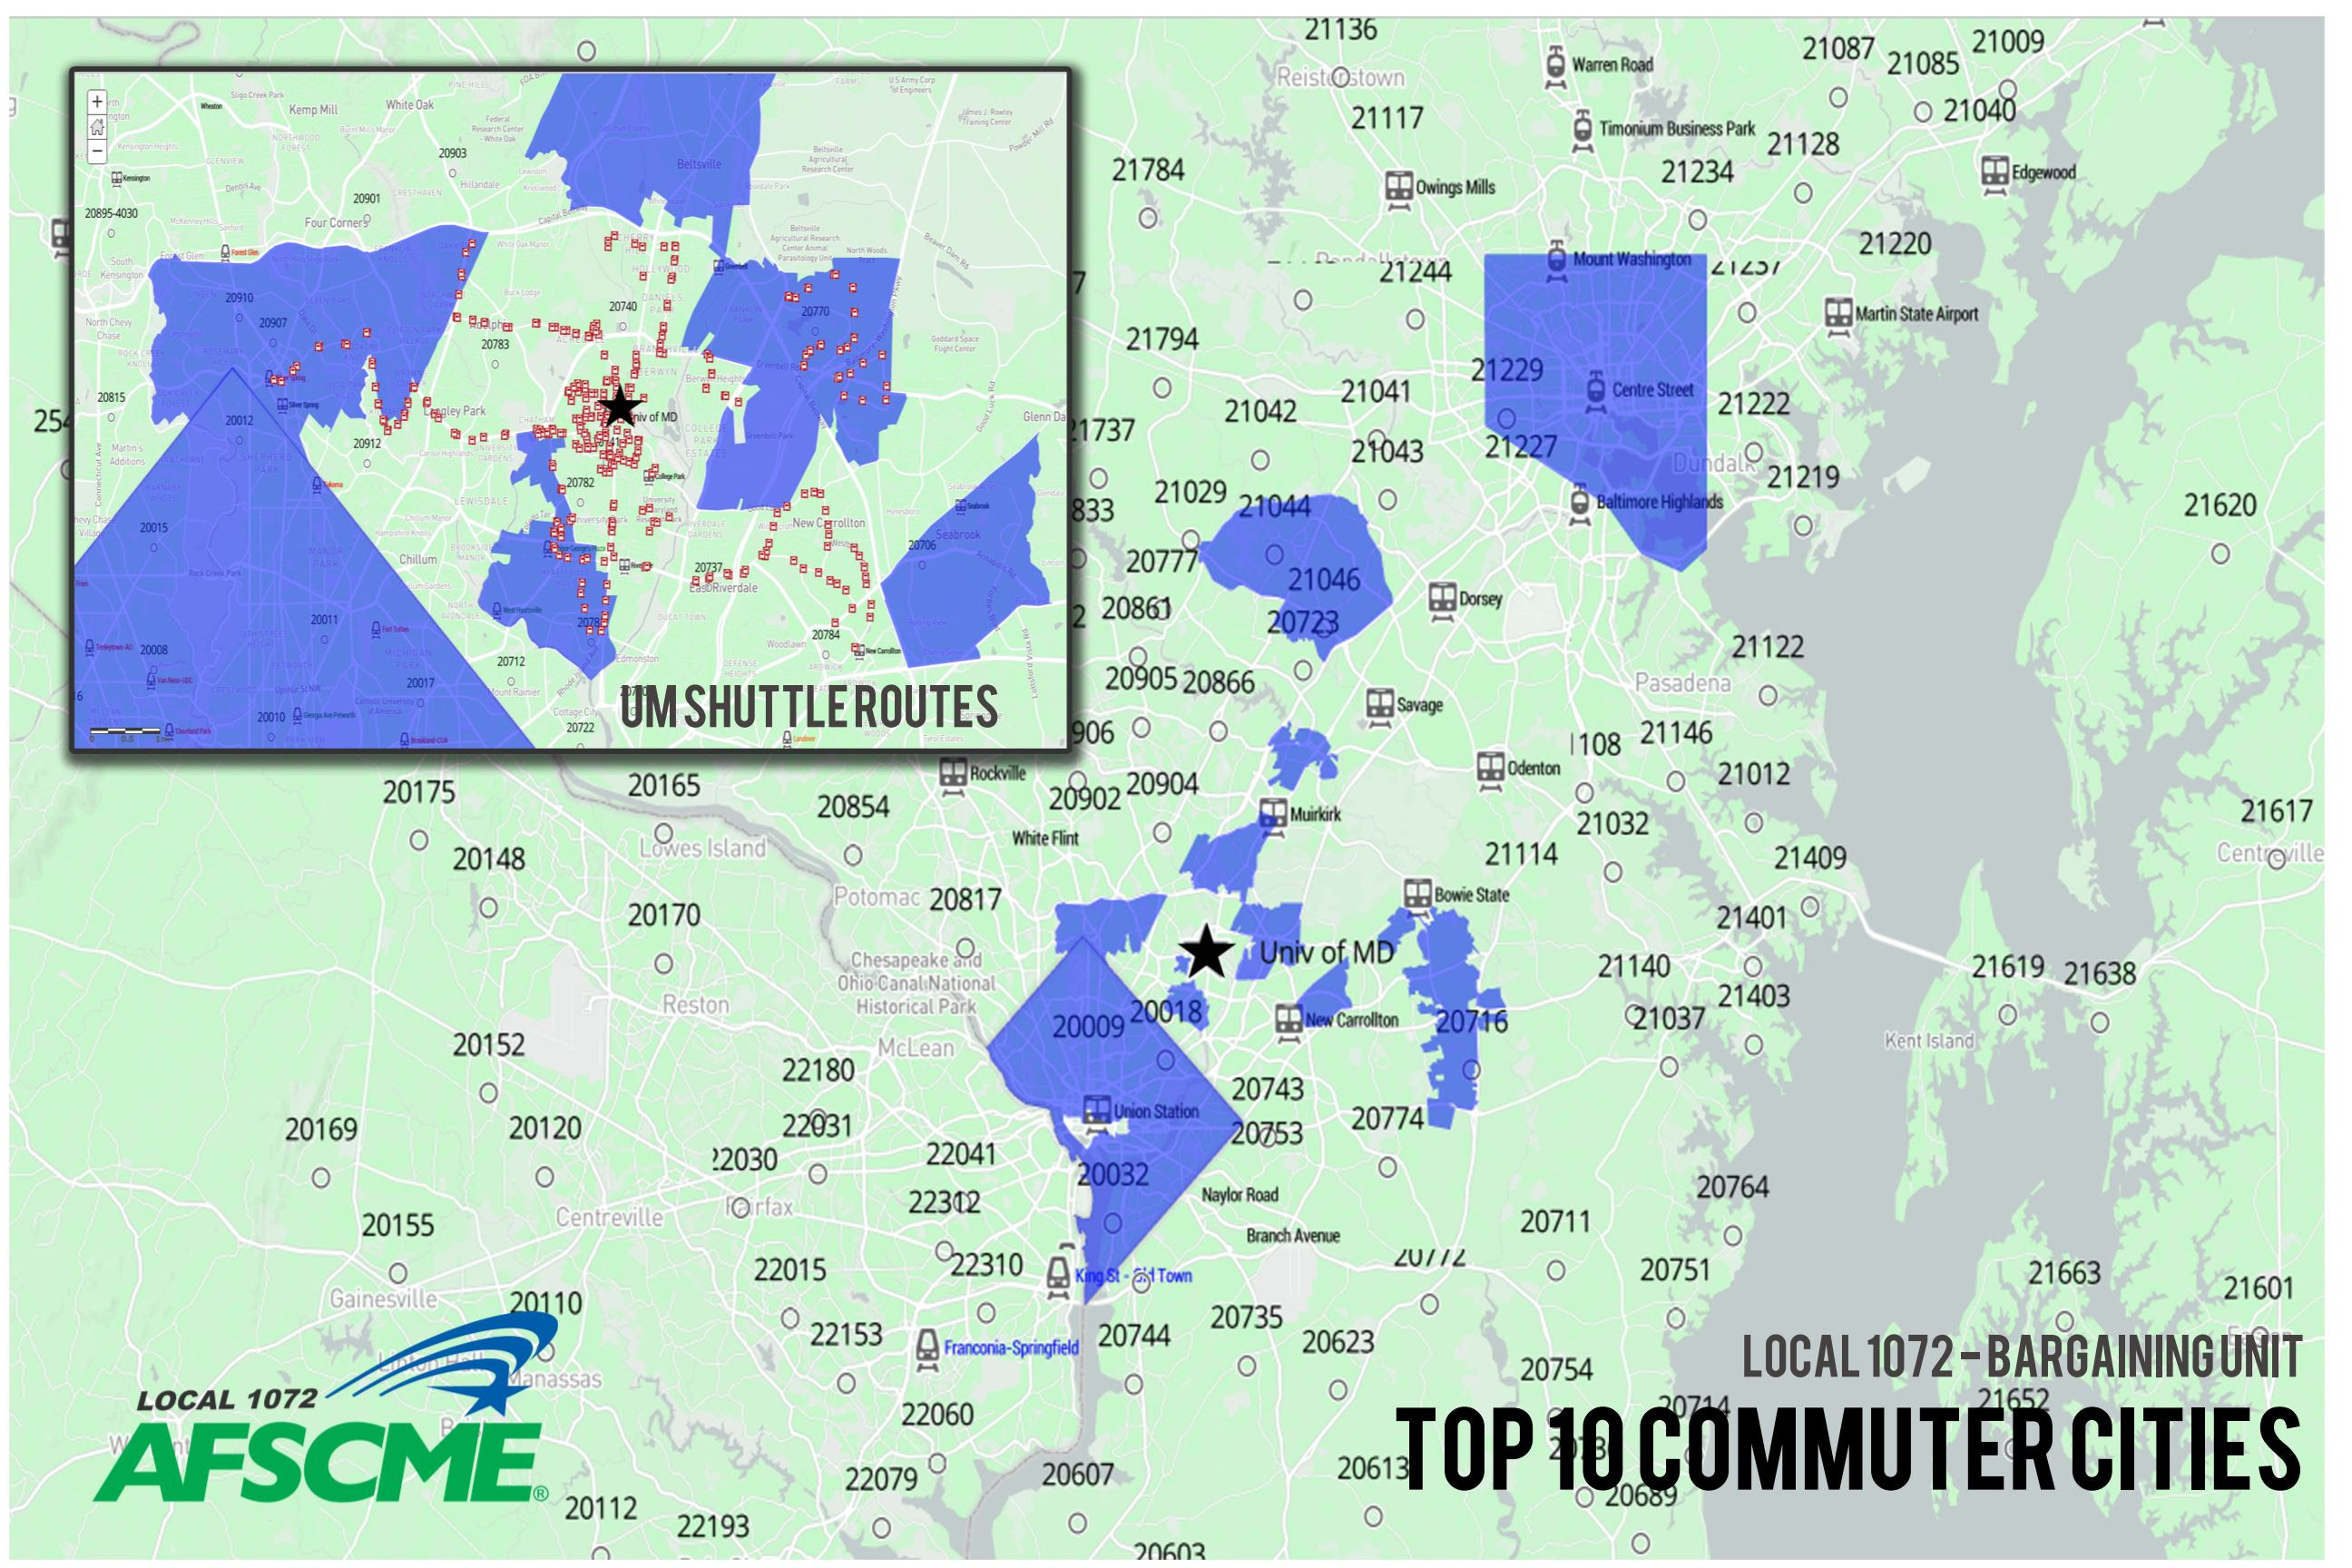 Top 10 Commuter Cities - AFSCME 1072 Bargaining Unit